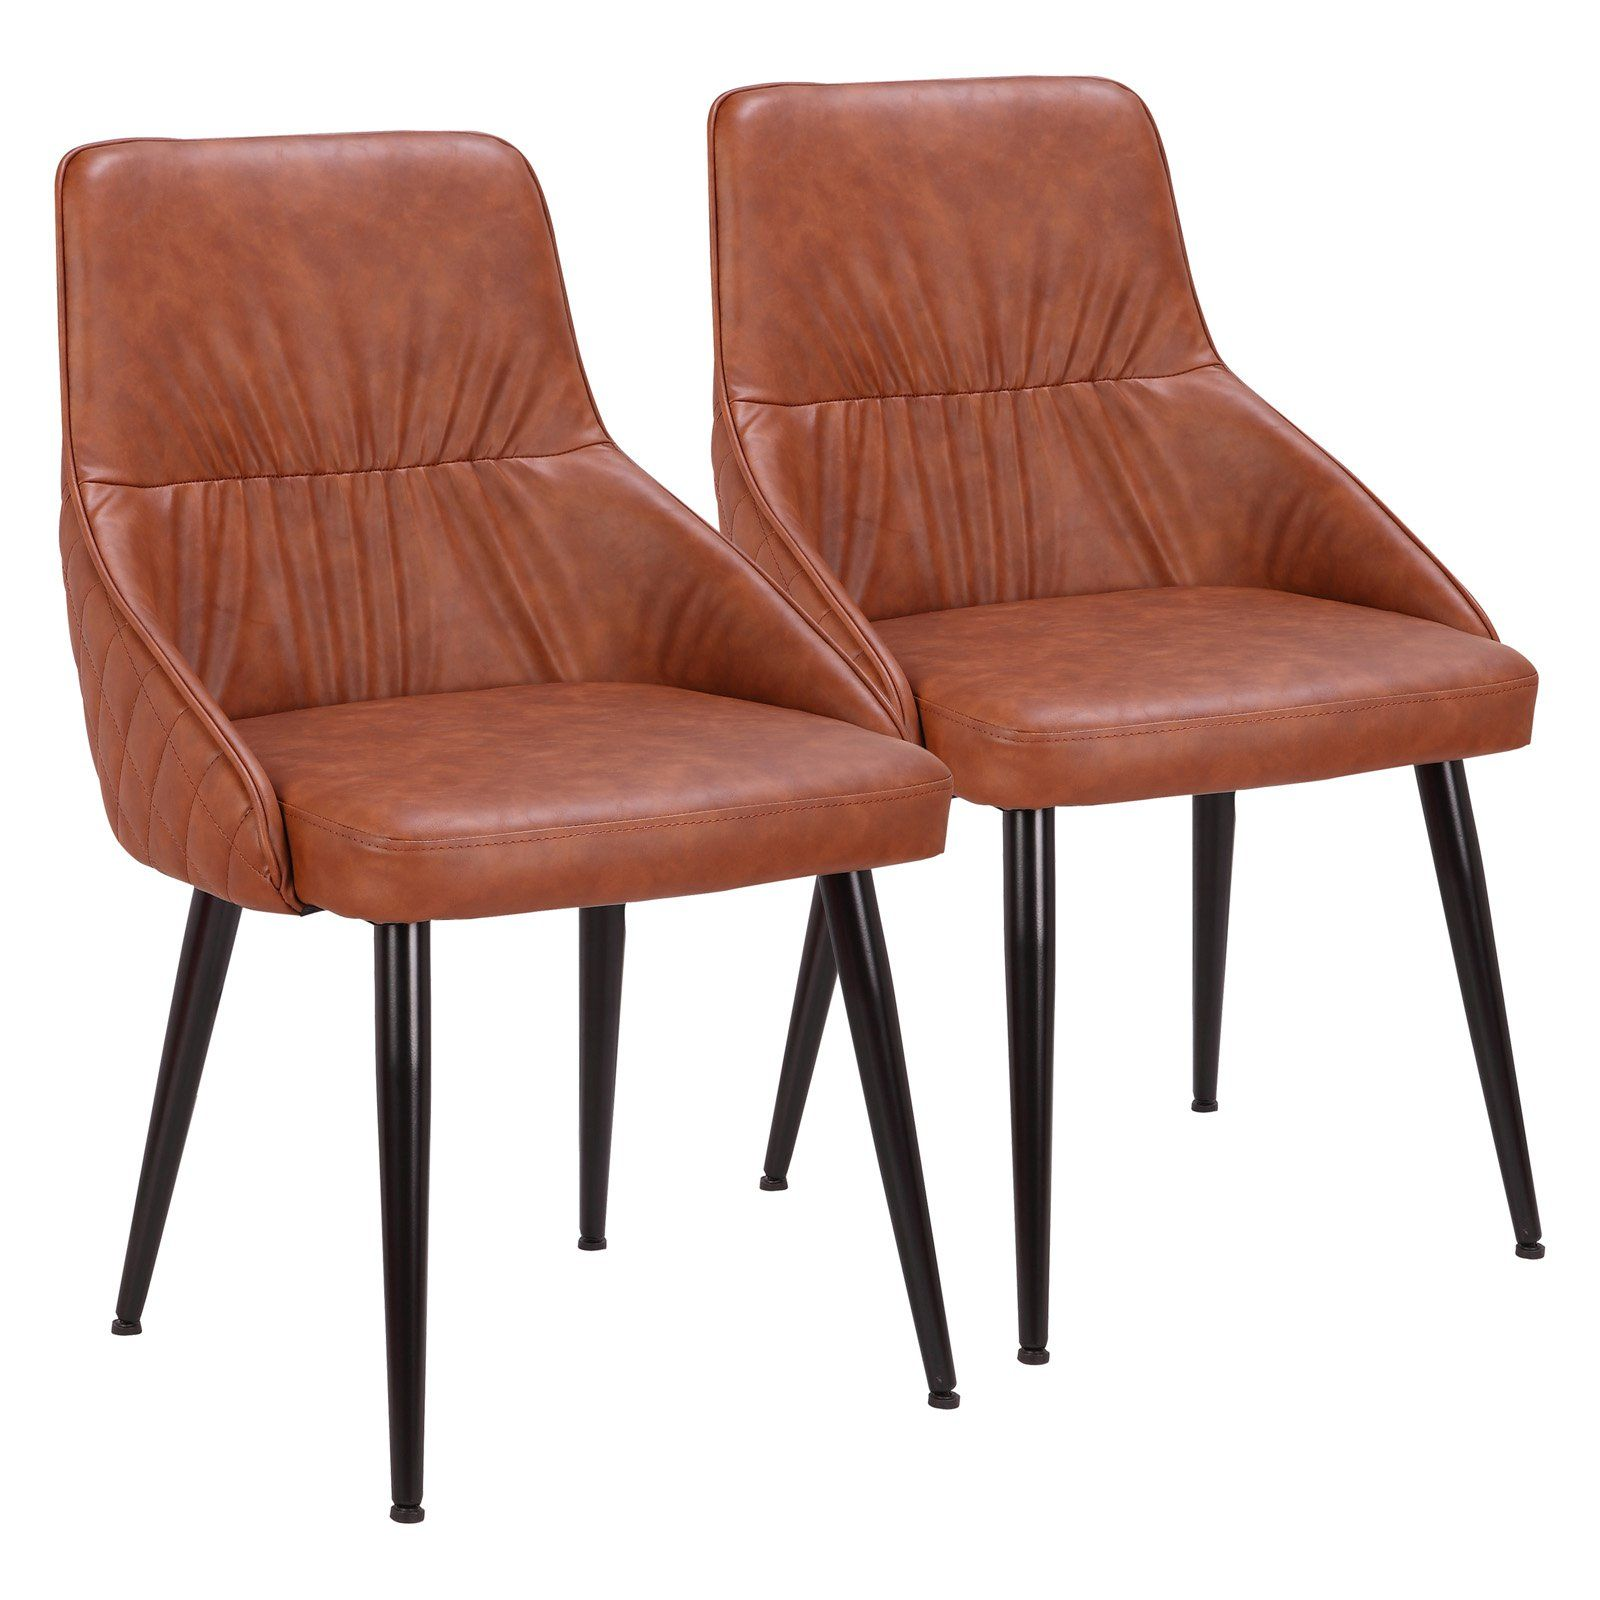 Admirable Lumisource Alden Faux Leather Dining Accent Side Chair Set Caraccident5 Cool Chair Designs And Ideas Caraccident5Info